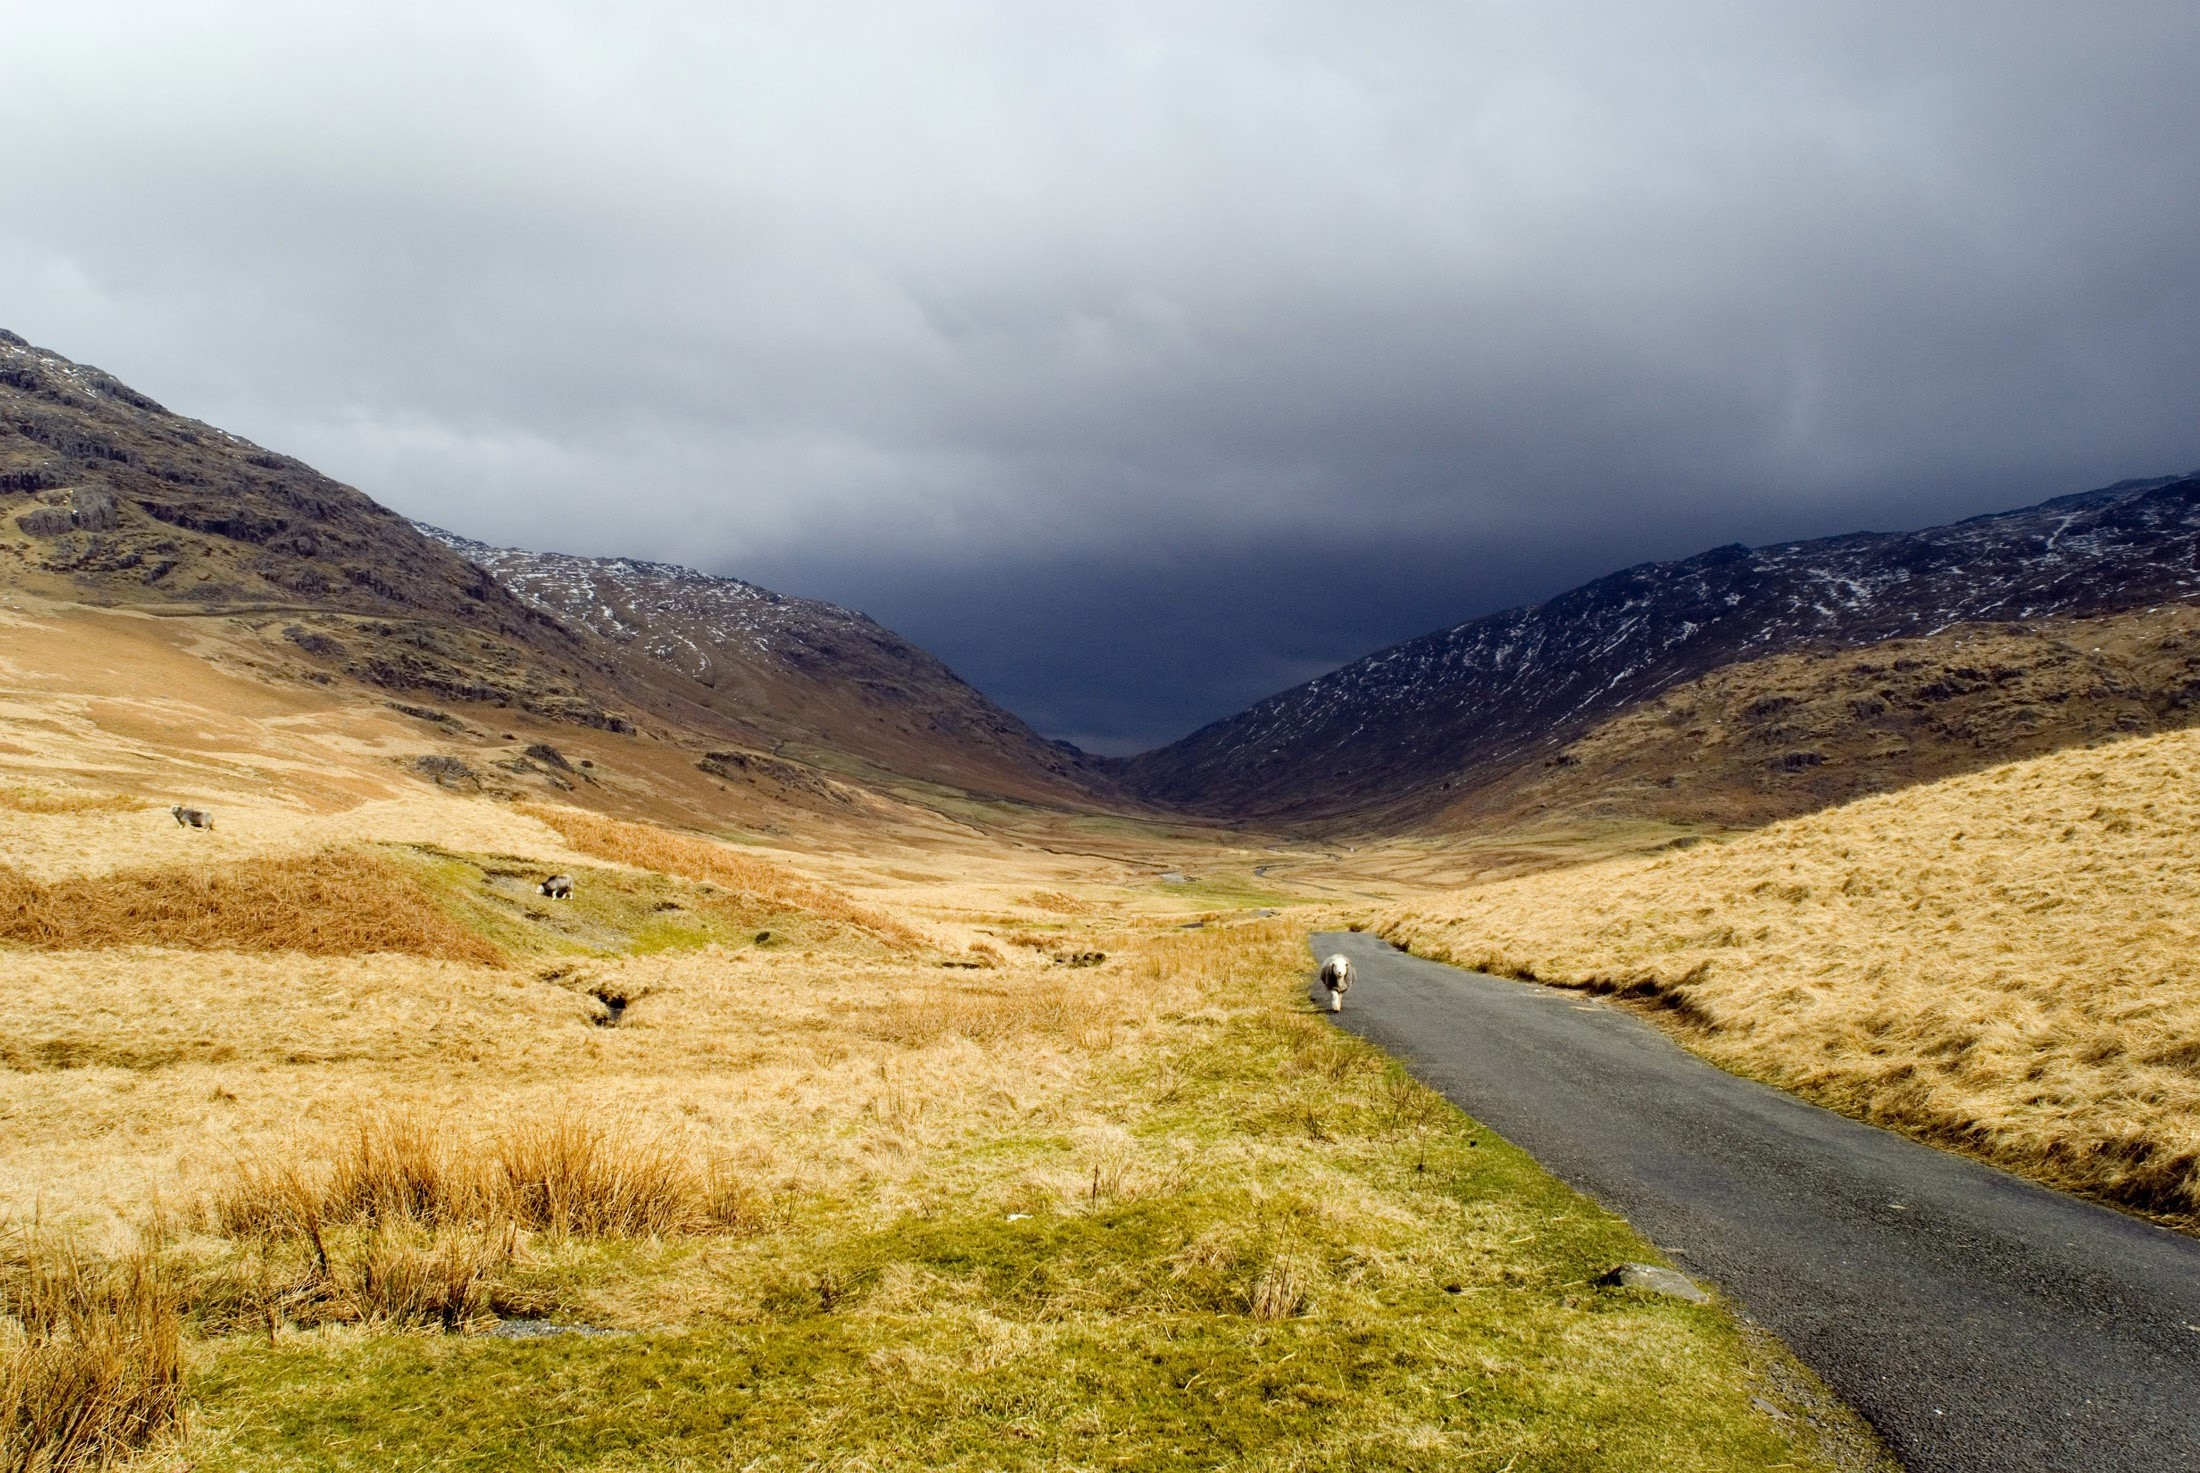 stormy clounds on the road along the hardknott pass driving towards cockley beck and wrynose pass